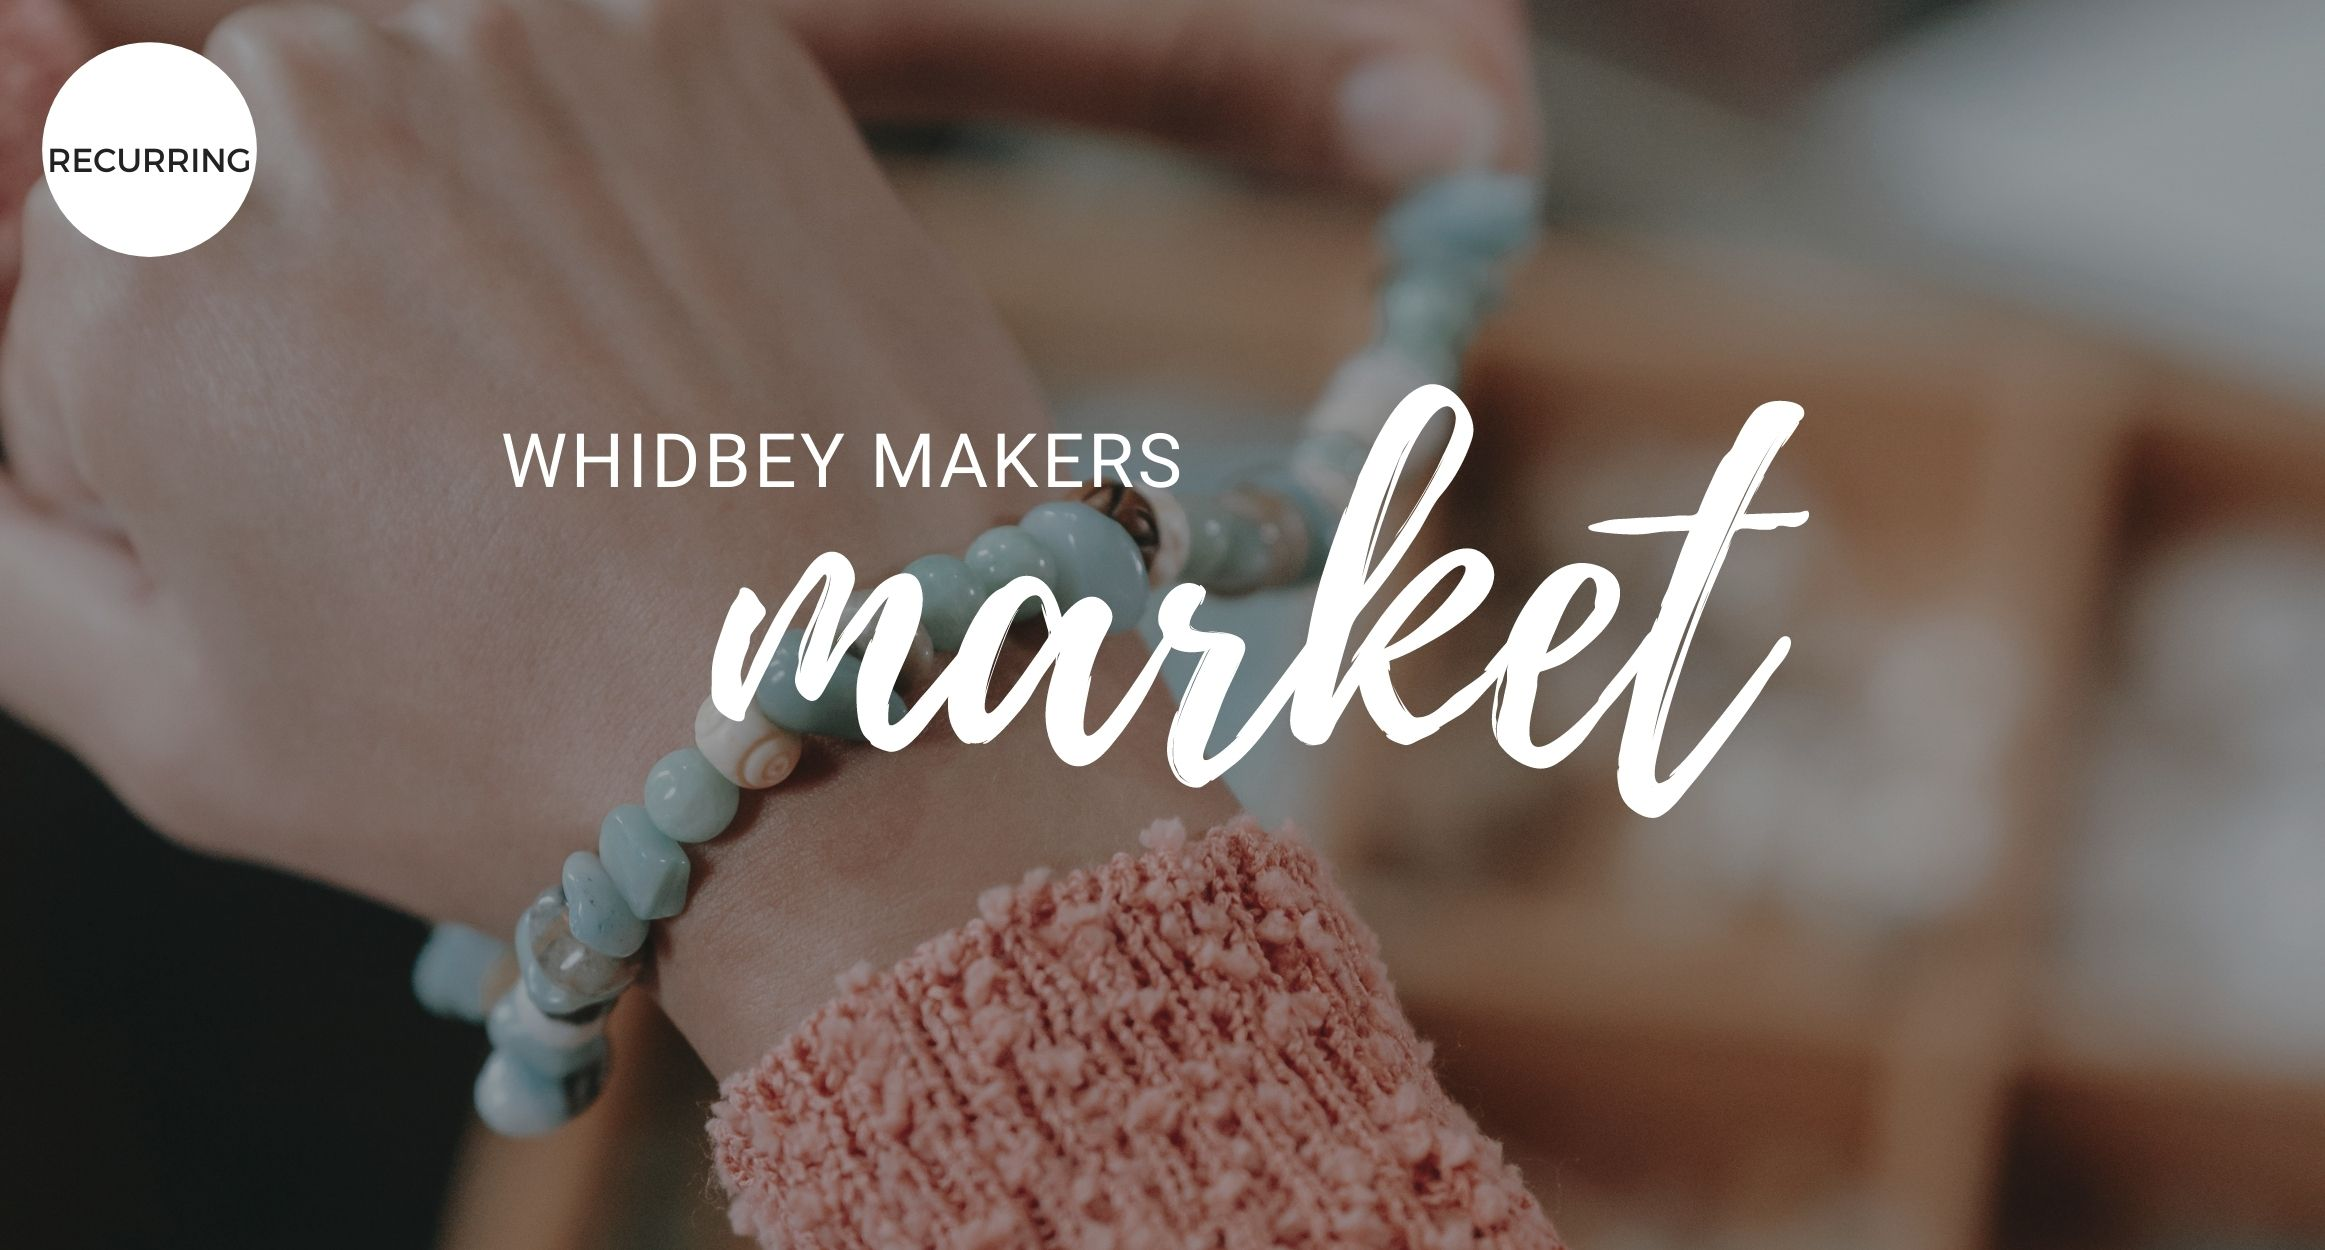 Whidbey Makers Market